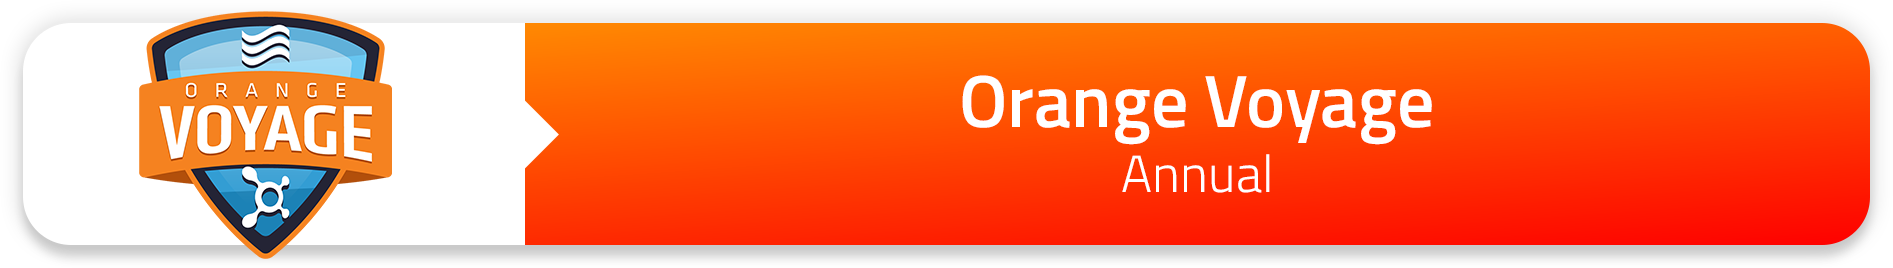 Orange Voyage (002)